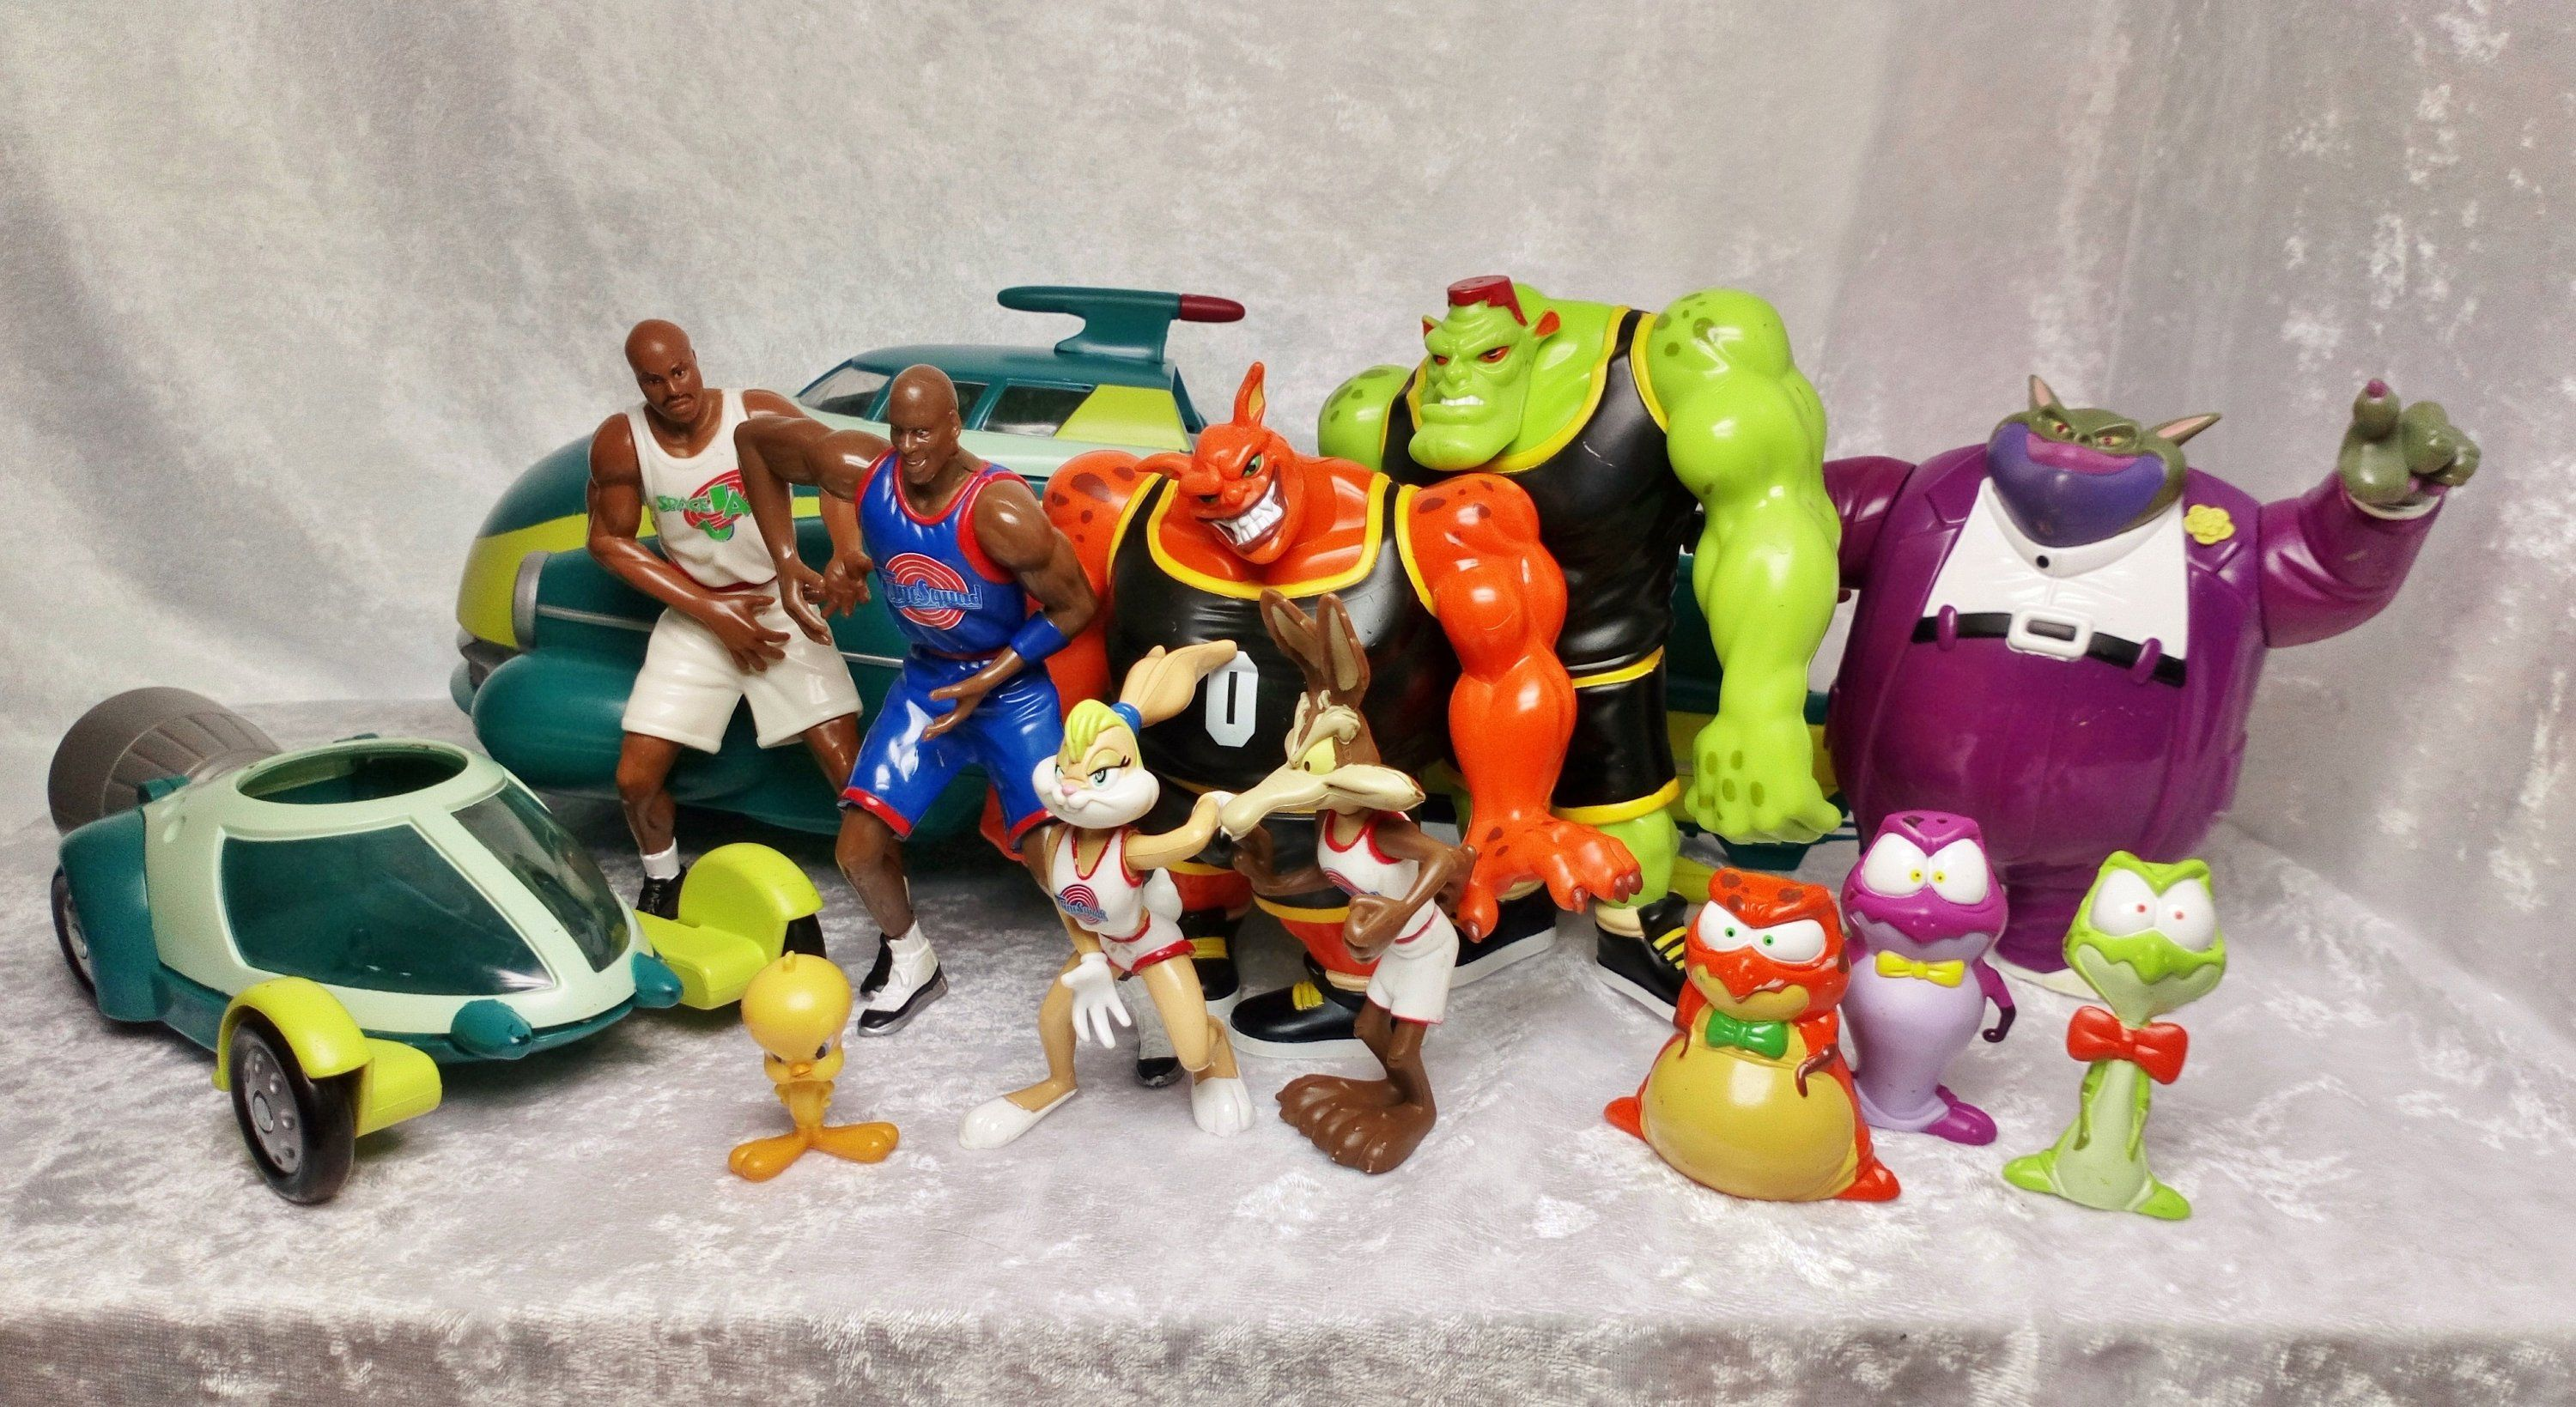 Looney Tunes Warner Bothers Space Jam Toysfigures Space Ship